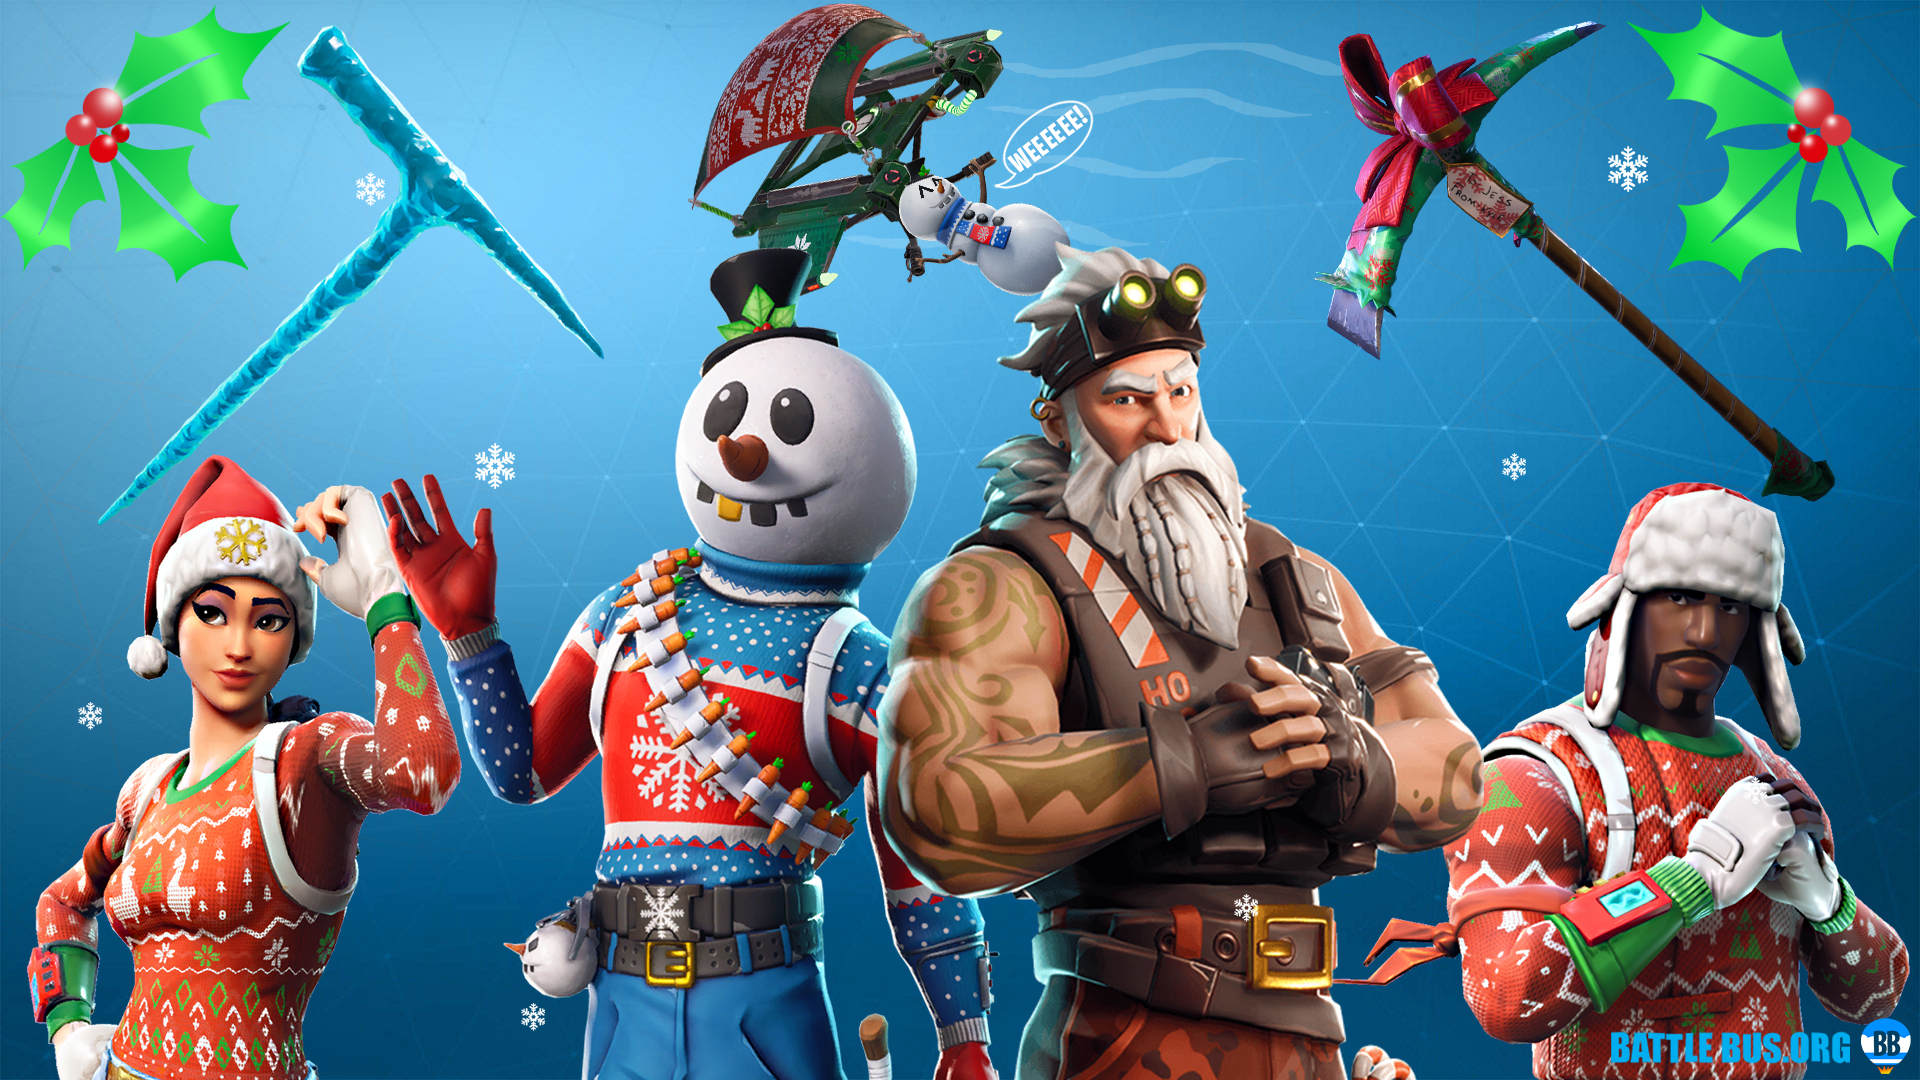 Fortnite Christmas Wallpapers   Fortnite News Skins Settings 1920x1080